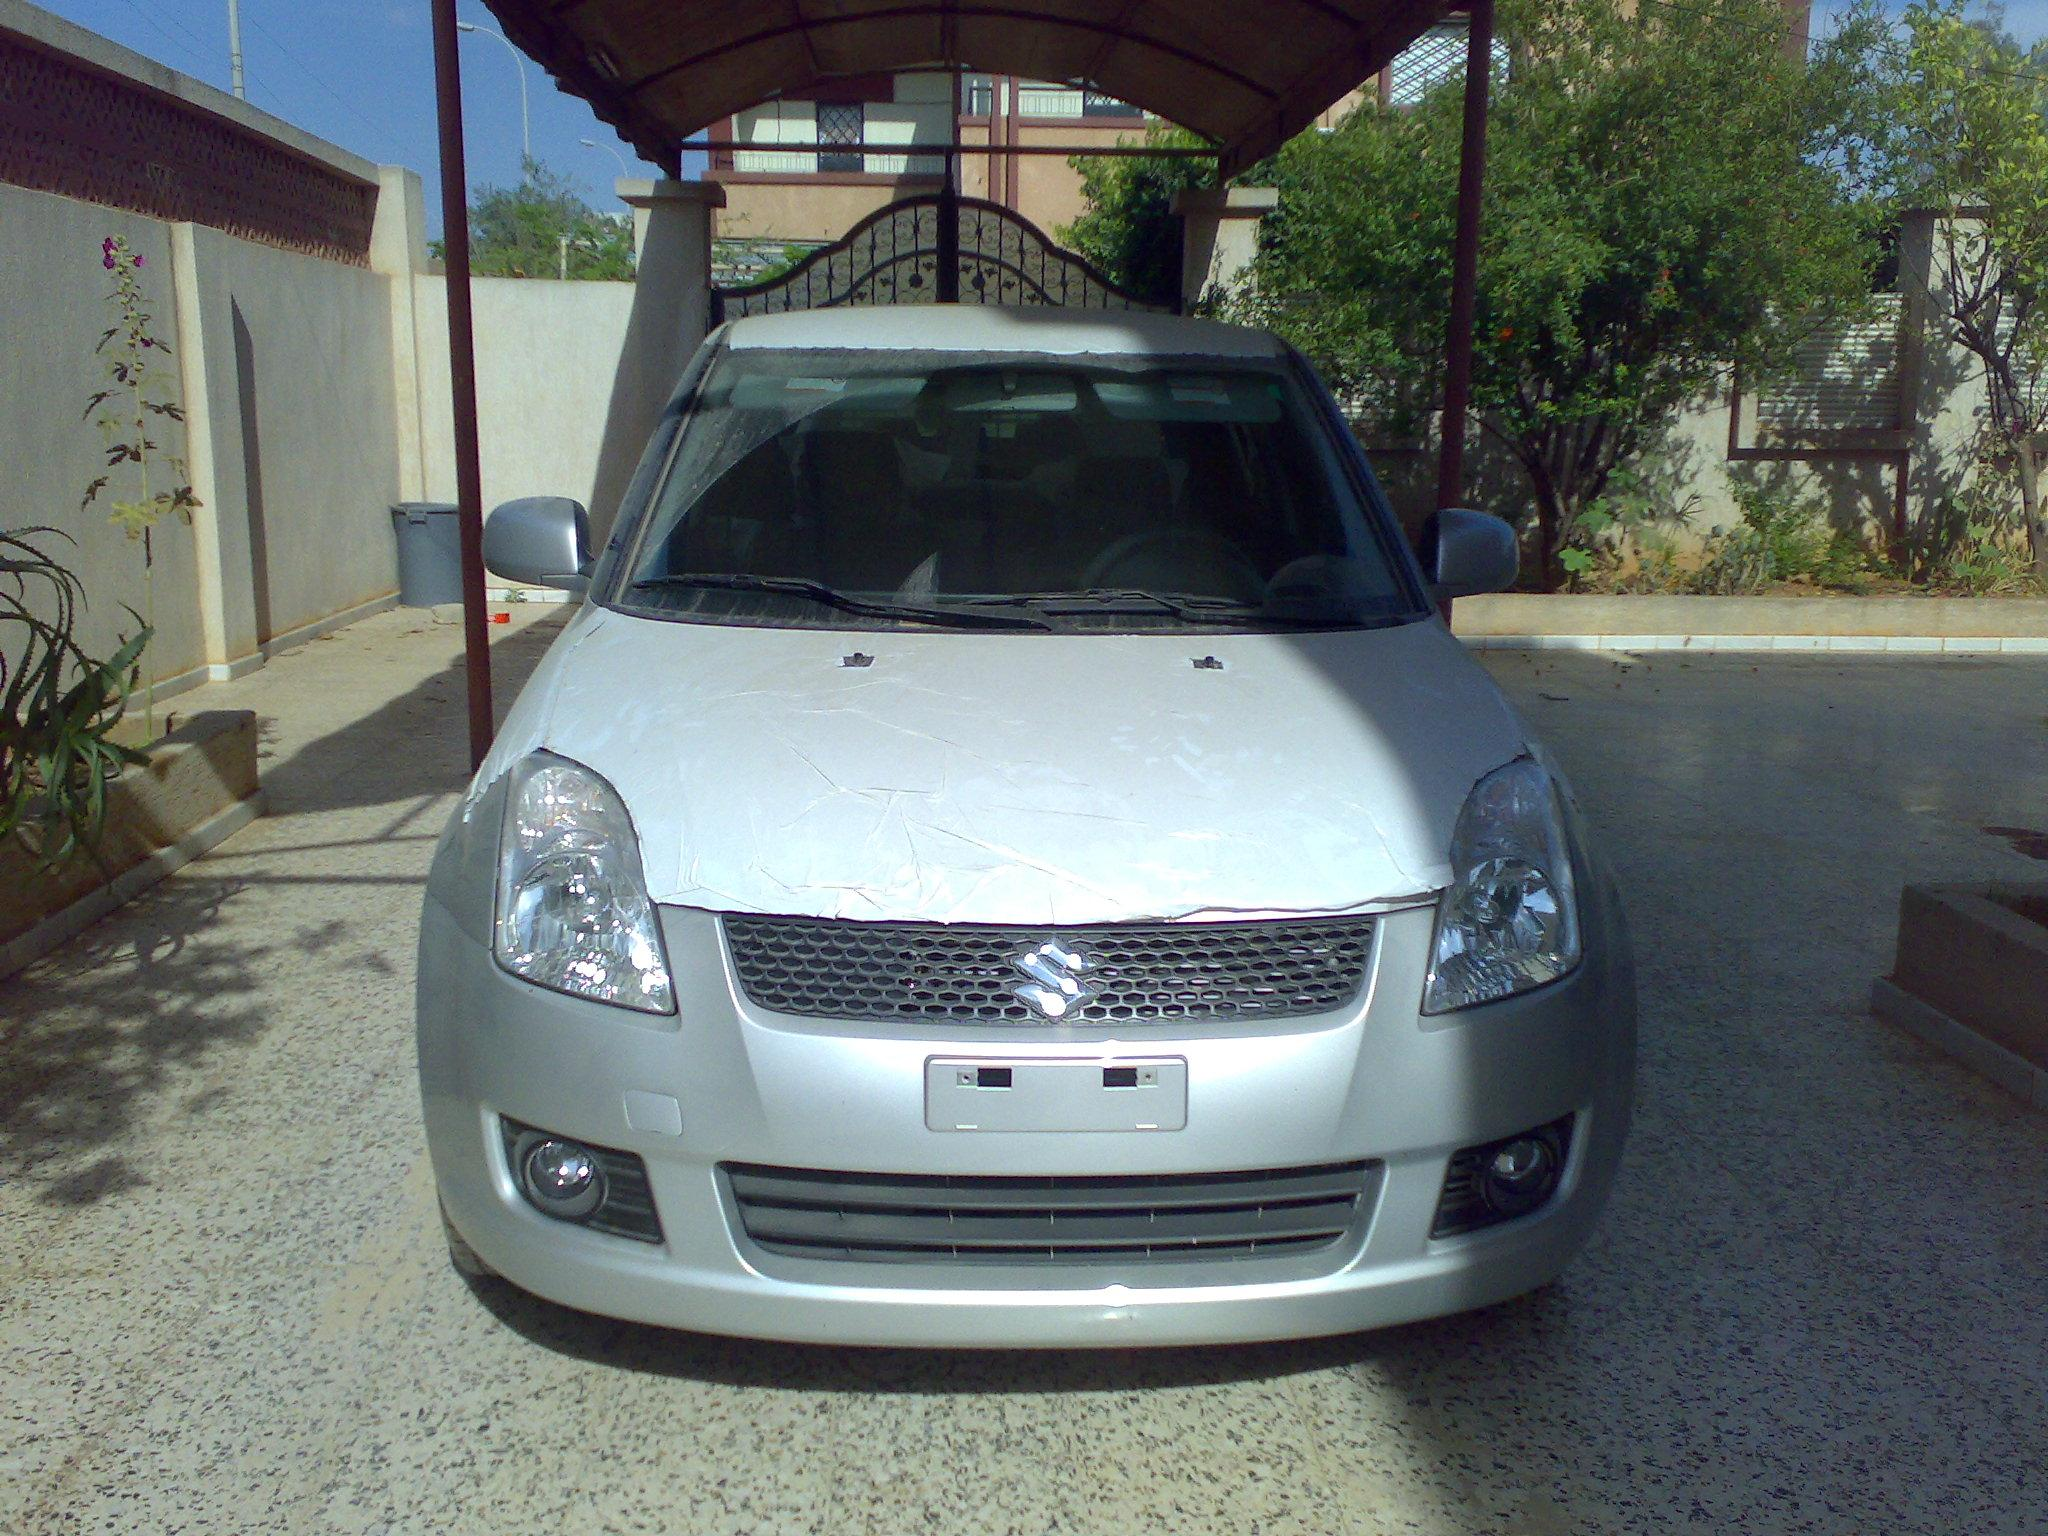 sportevo2513's 2007 Suzuki Swift